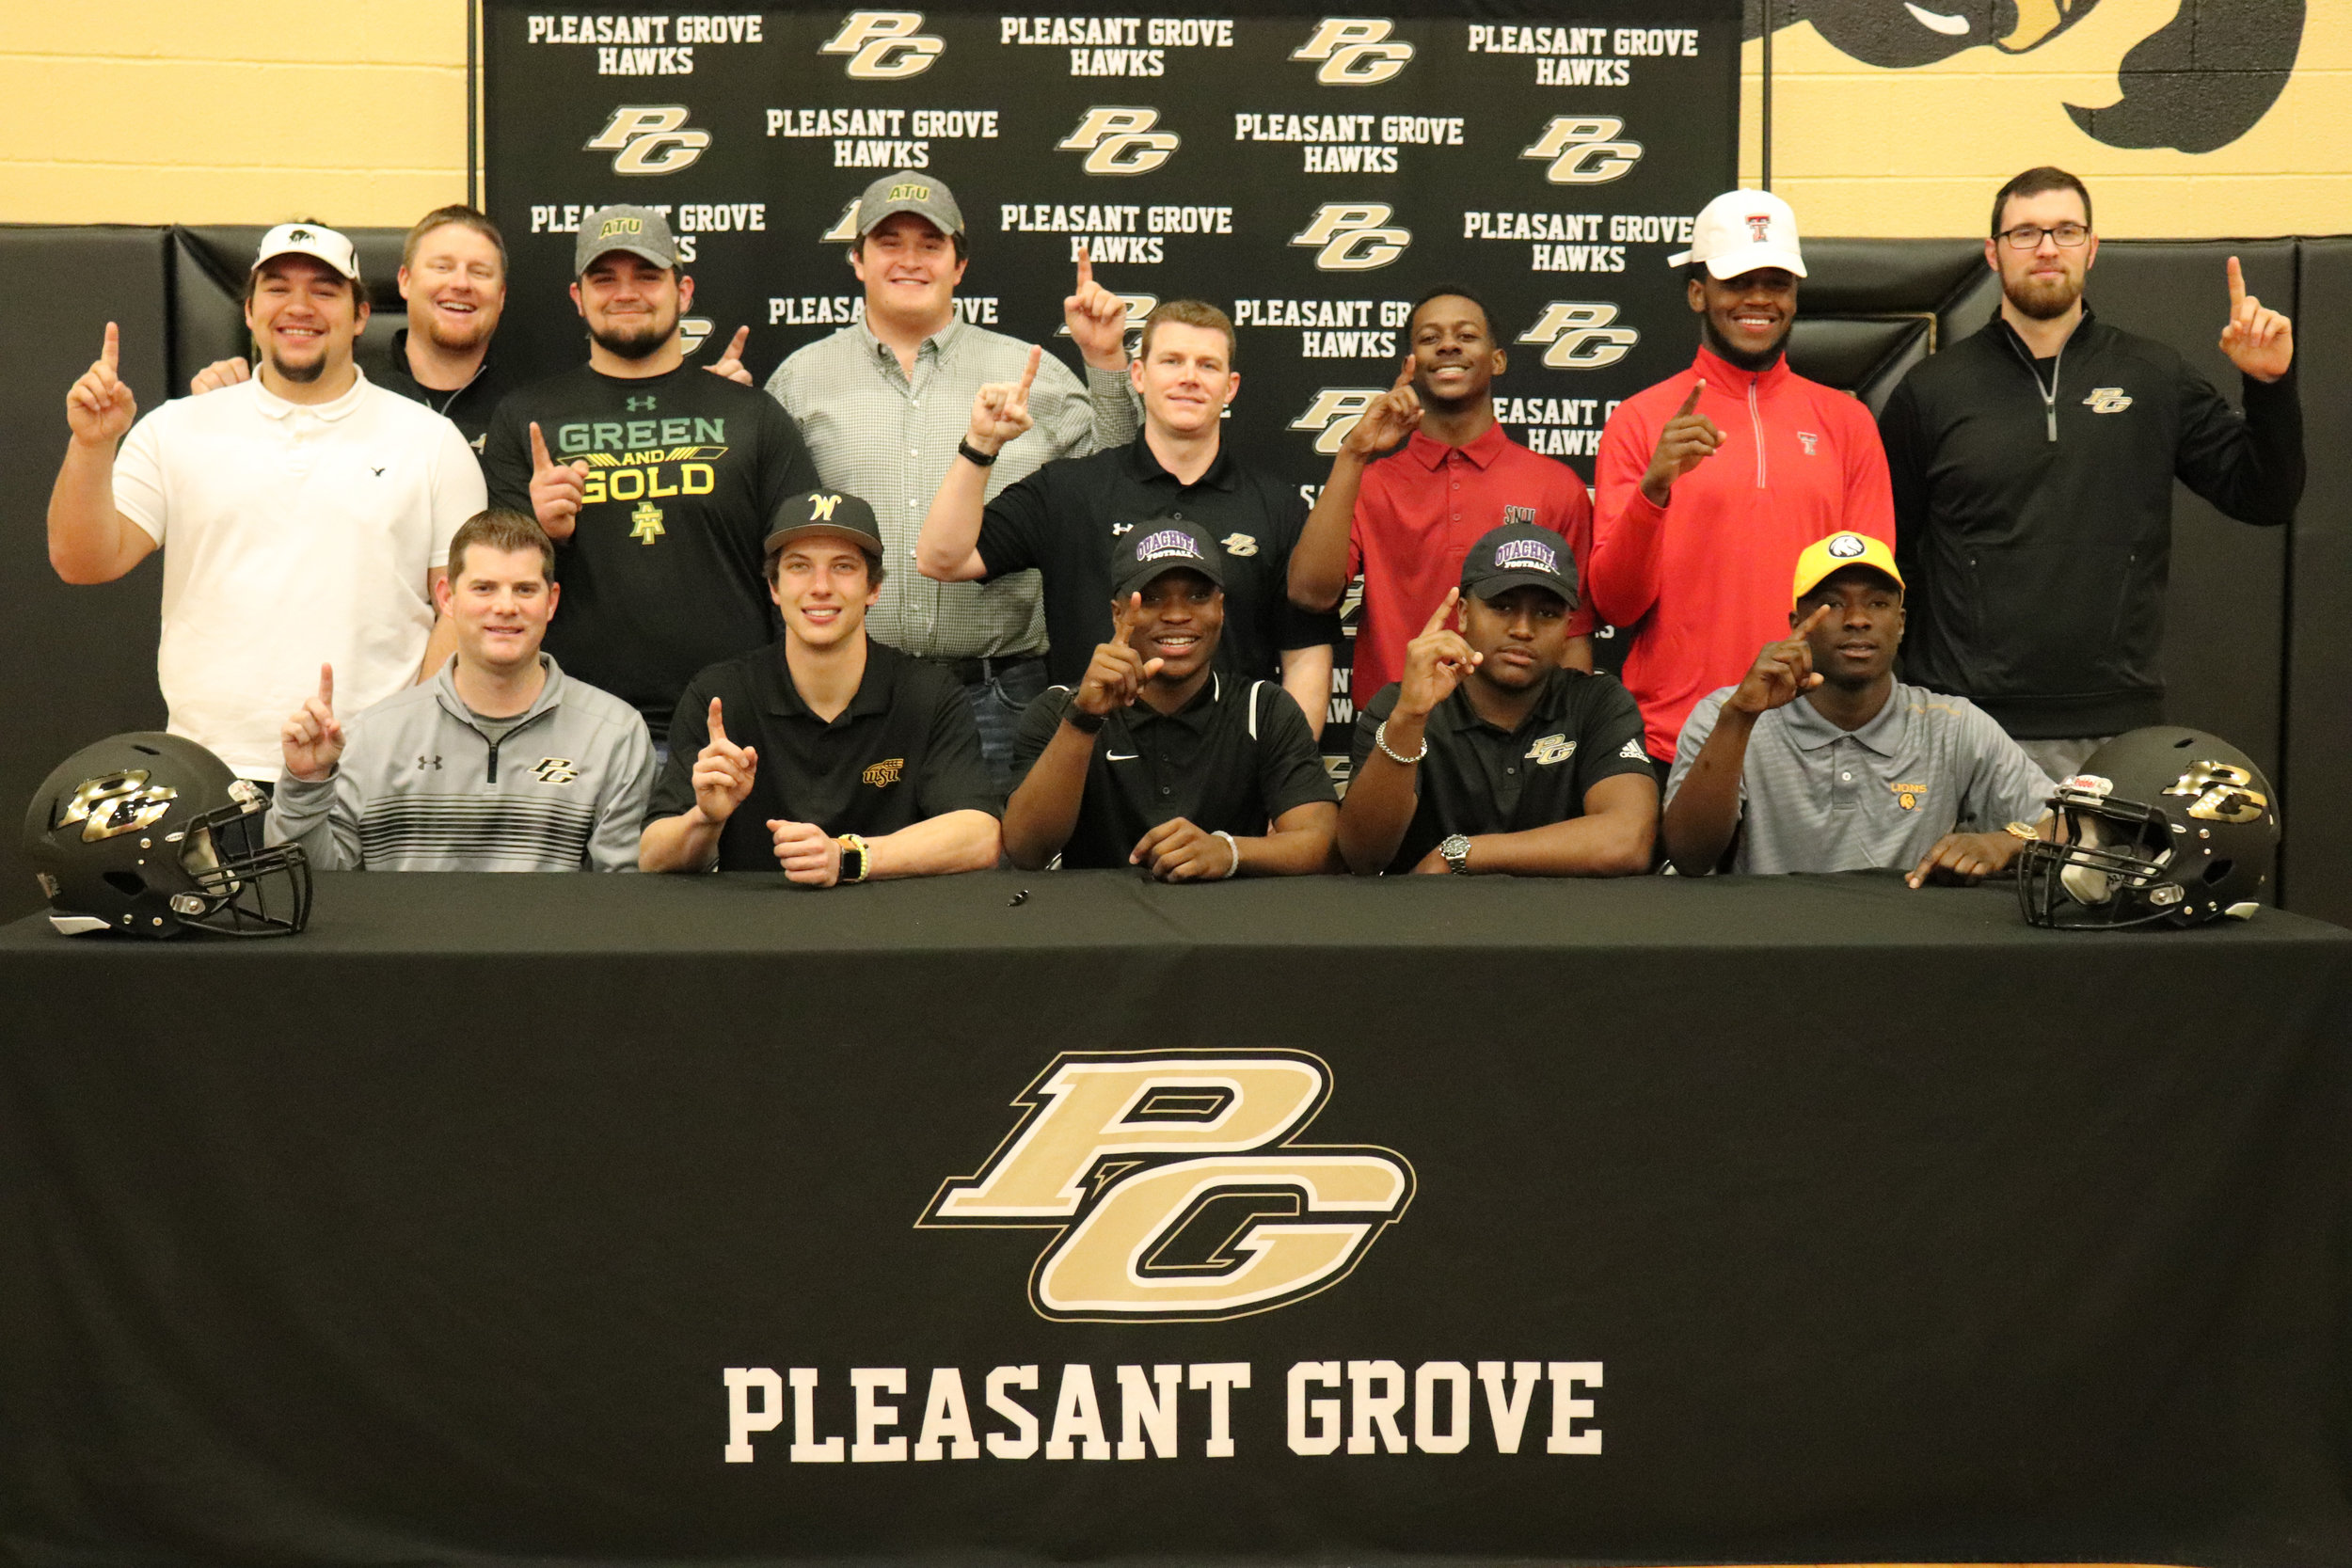 ^ During National Signing Day, nine members of the Pleasant Grove Hawk team received college scholarships which is a school record. Pictured are: (bottom row) Coach Justin Gibson, Carson Cox, TJ Cole, Caleb Porchia and Chauncey Martin; (standing) Austin Toler, Coach Riley Fincher, Nick Gavriel, Drake Fowler, Coach Josh Gibson, Cameron Wells, Xavier Benson and Coach Blake Thomas.